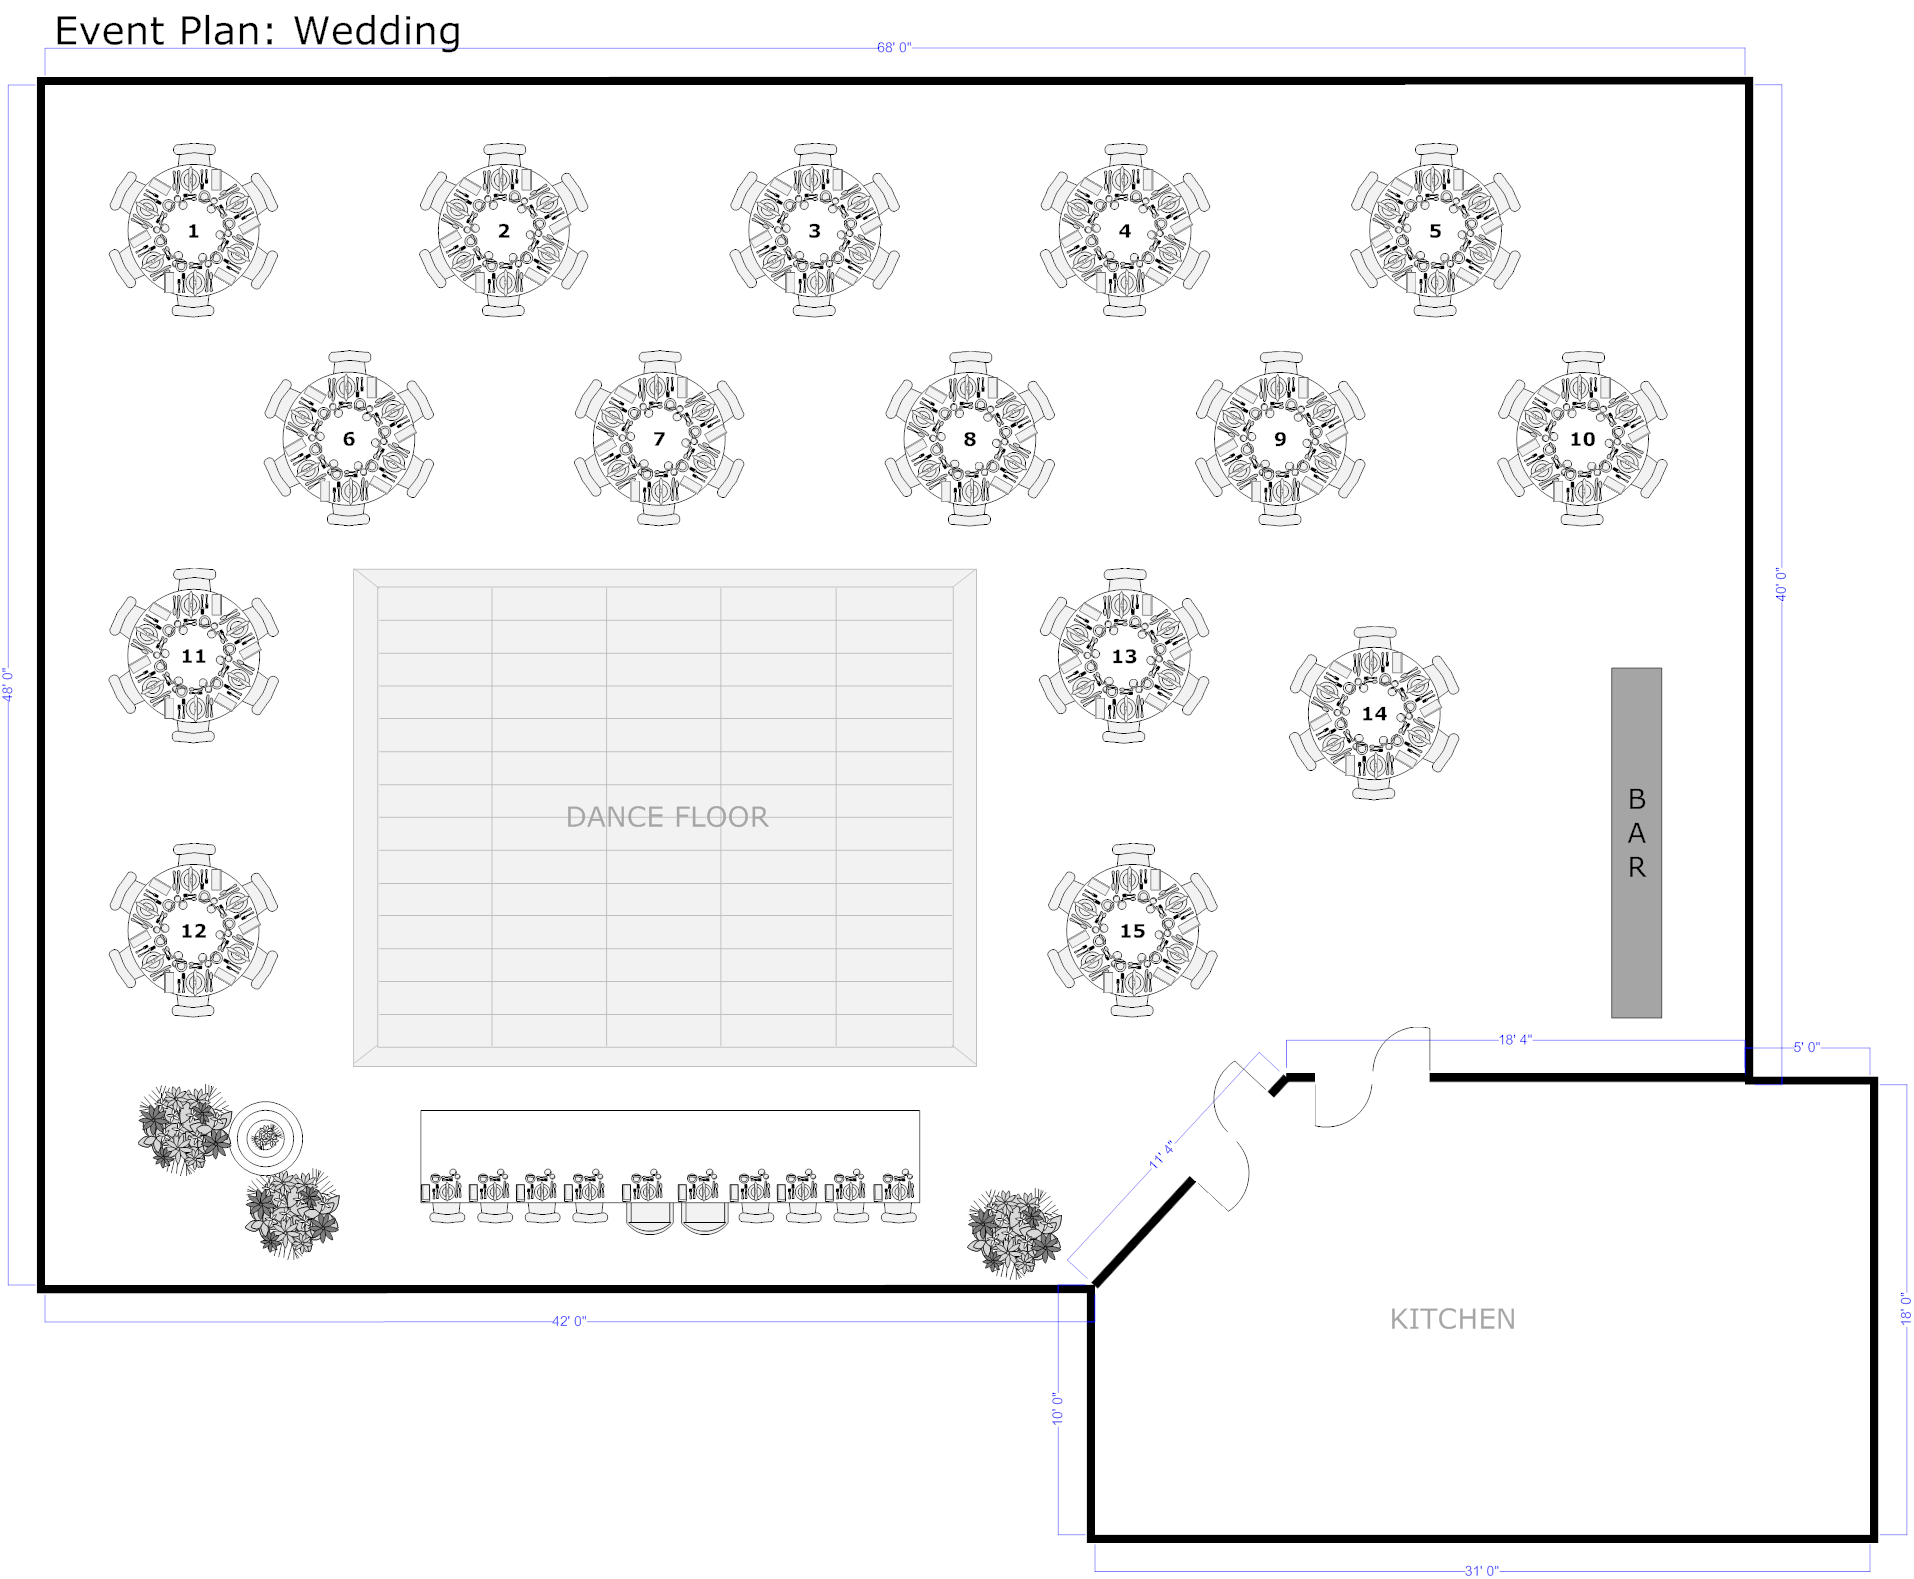 Event Planning Software Download Free For Easy Layout Event Plans Floor Plan Layout Wedding Floor Plan Floor Plan Creator